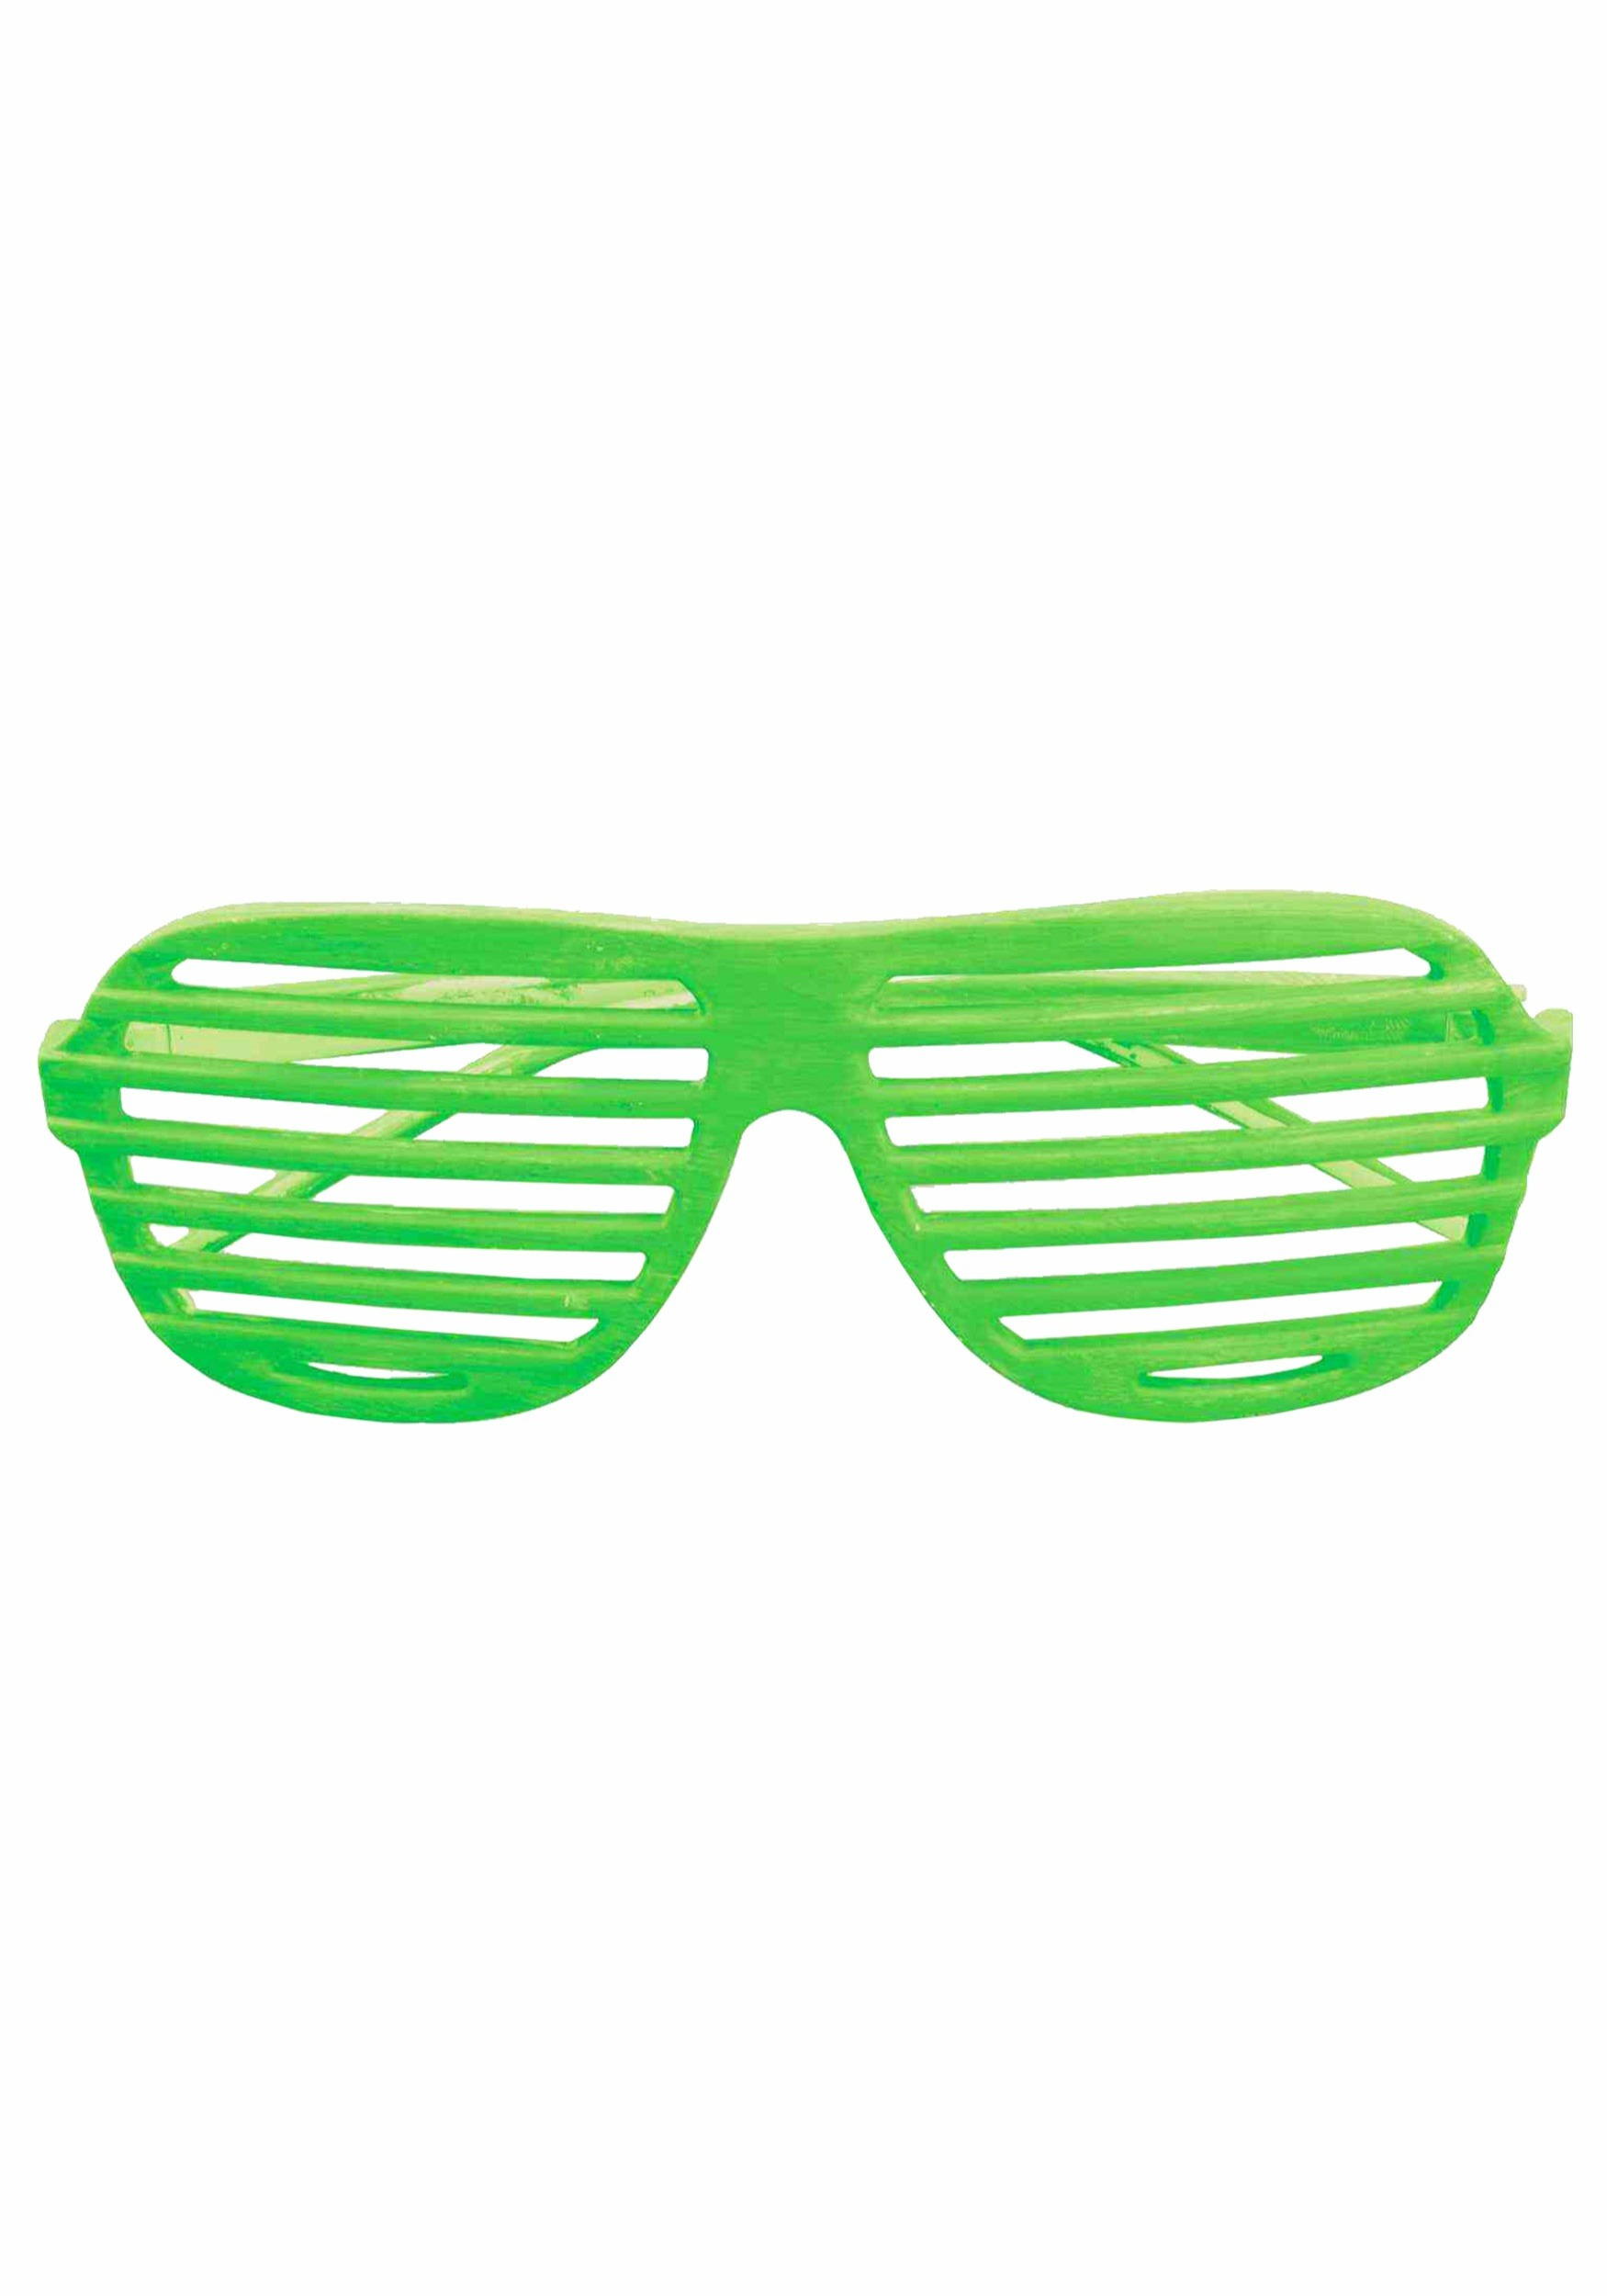 7aa0de8bddf Neon green slot glasses jpg 1750x2500 Neon 80s sunglasses